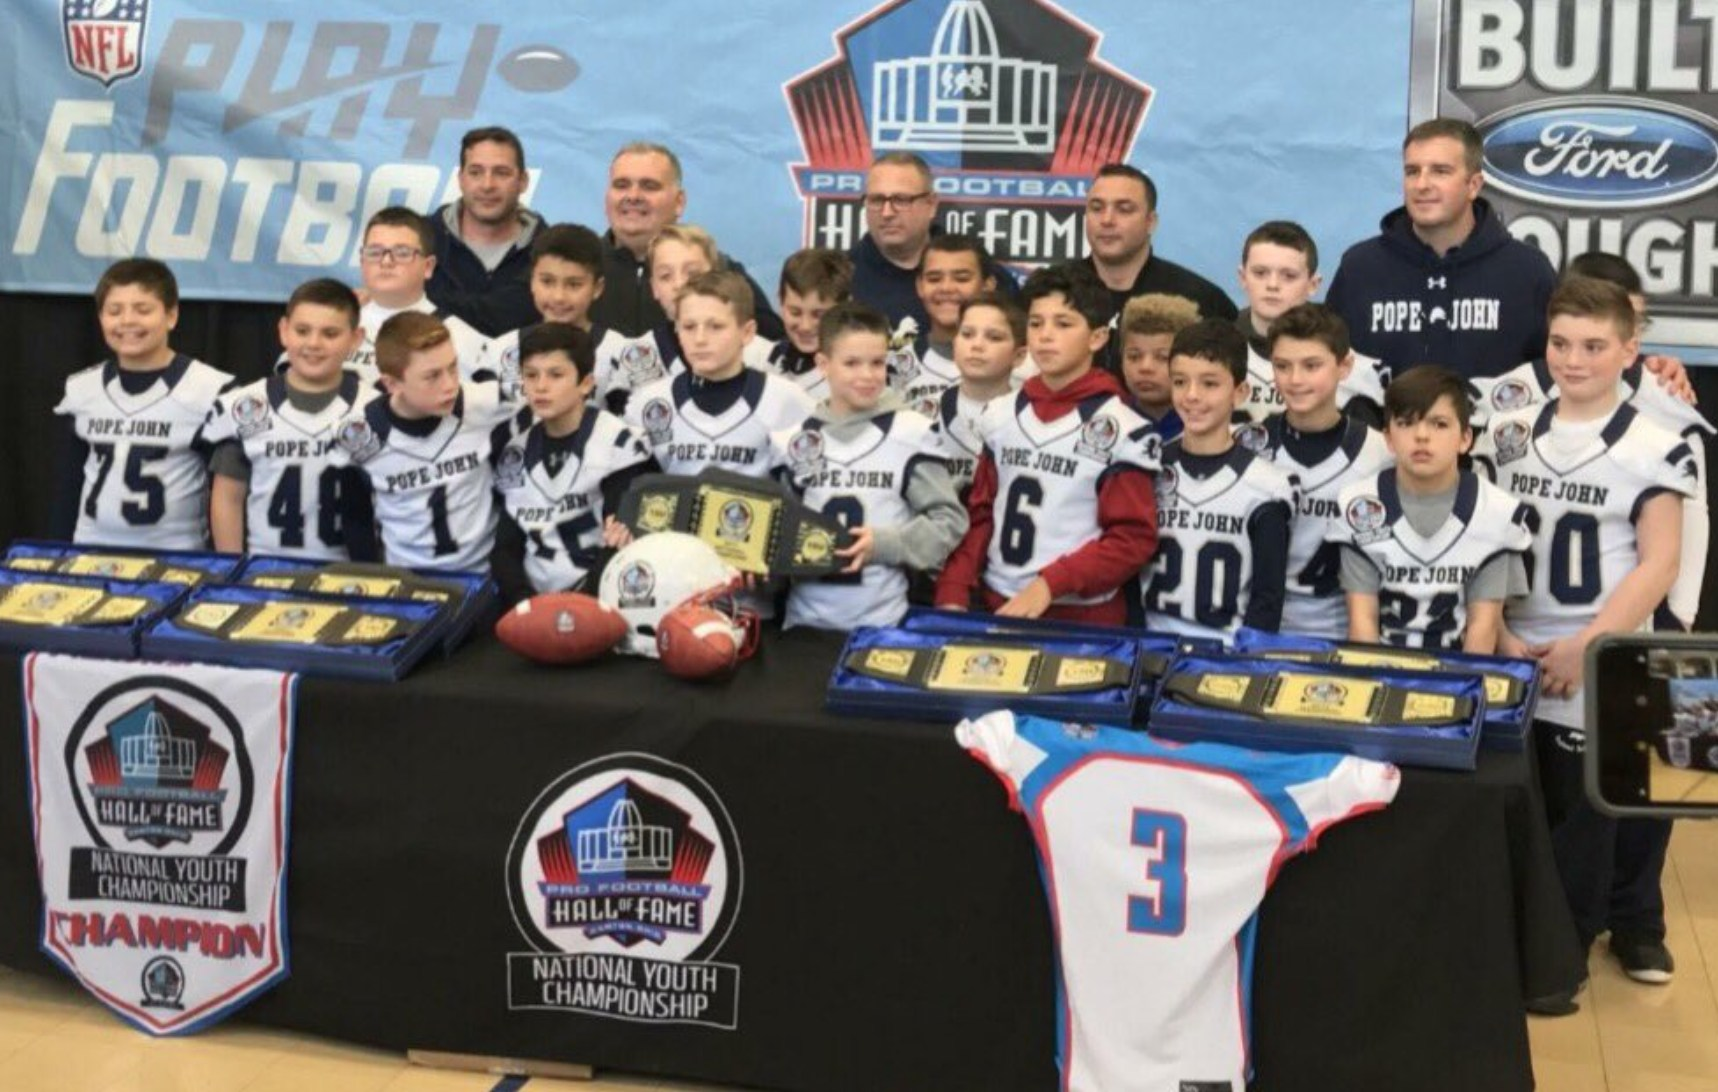 Jr Lions 10U Football team poses for pictures during media day at nationals